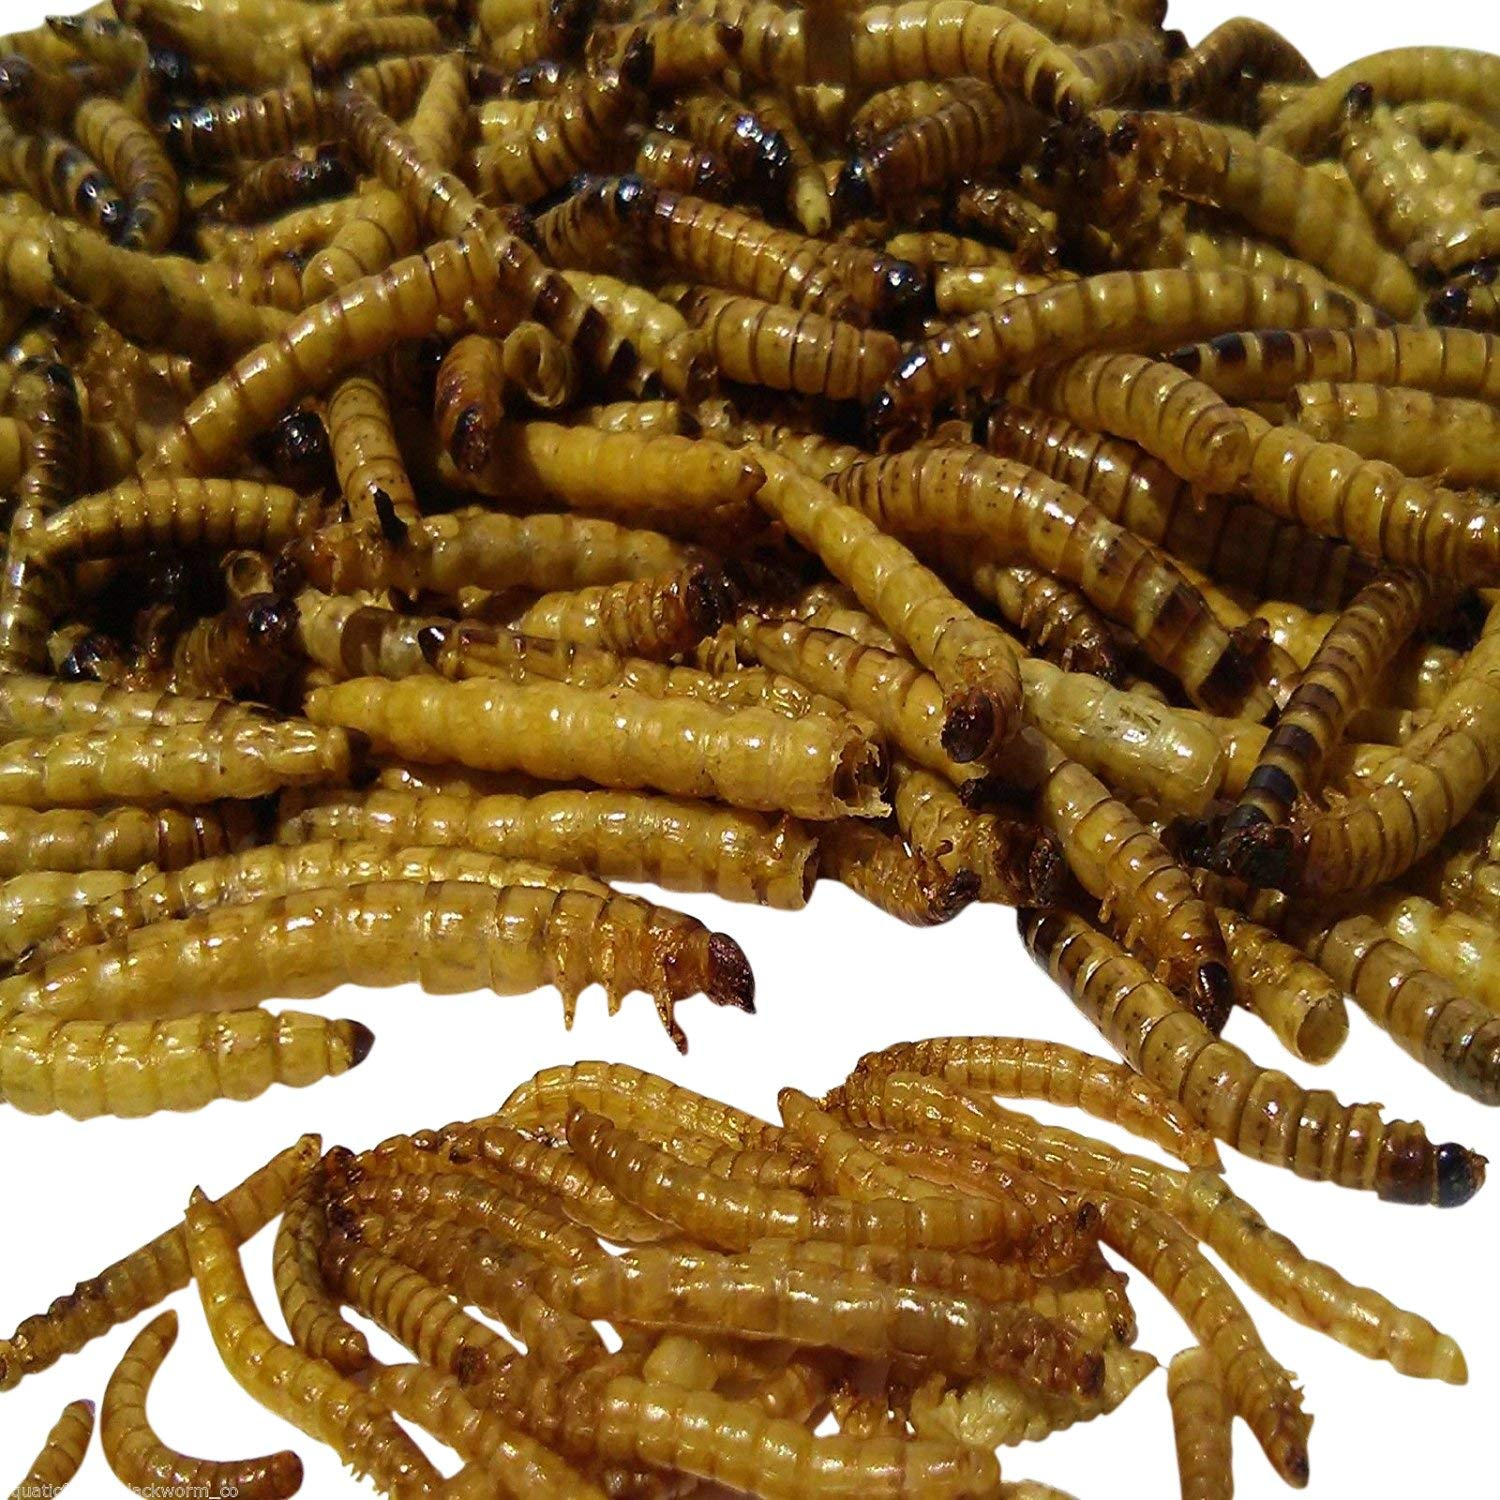 Aquatic Foods Freeze Dried GIANT Mealworms, Ideal for Large Fish, Turtles, Pond Fish, Birds, Hamsters &... by Aquatic Foods Inc.